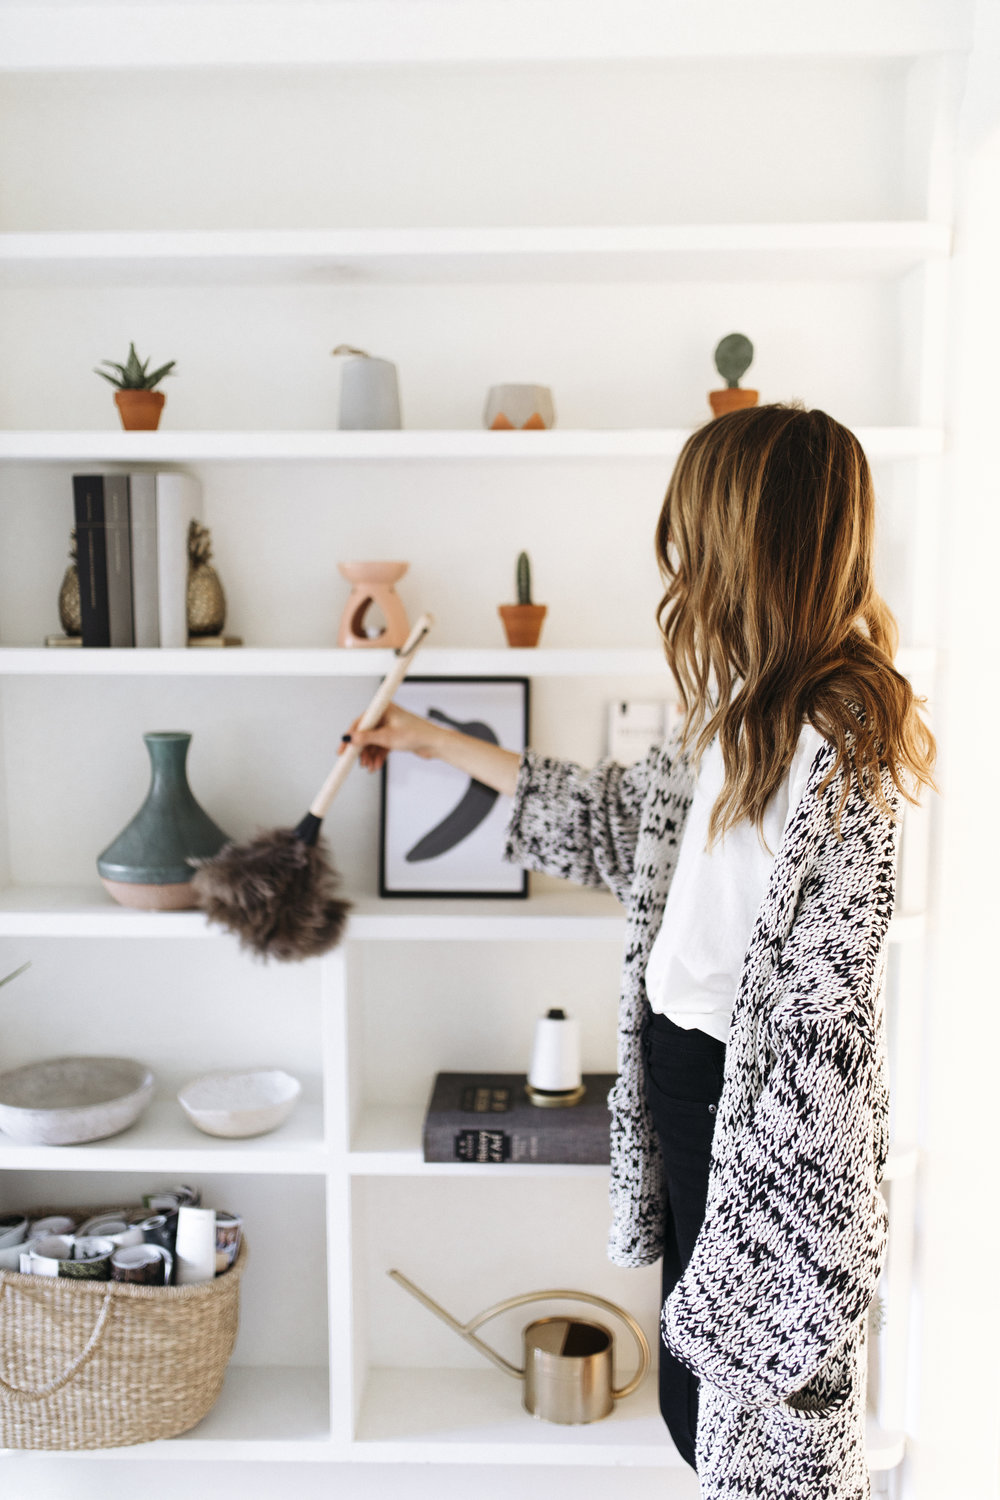 Staying cozy and positive is what hygge is all about. Dusting off a bright white book shelf opens up a room for creativity